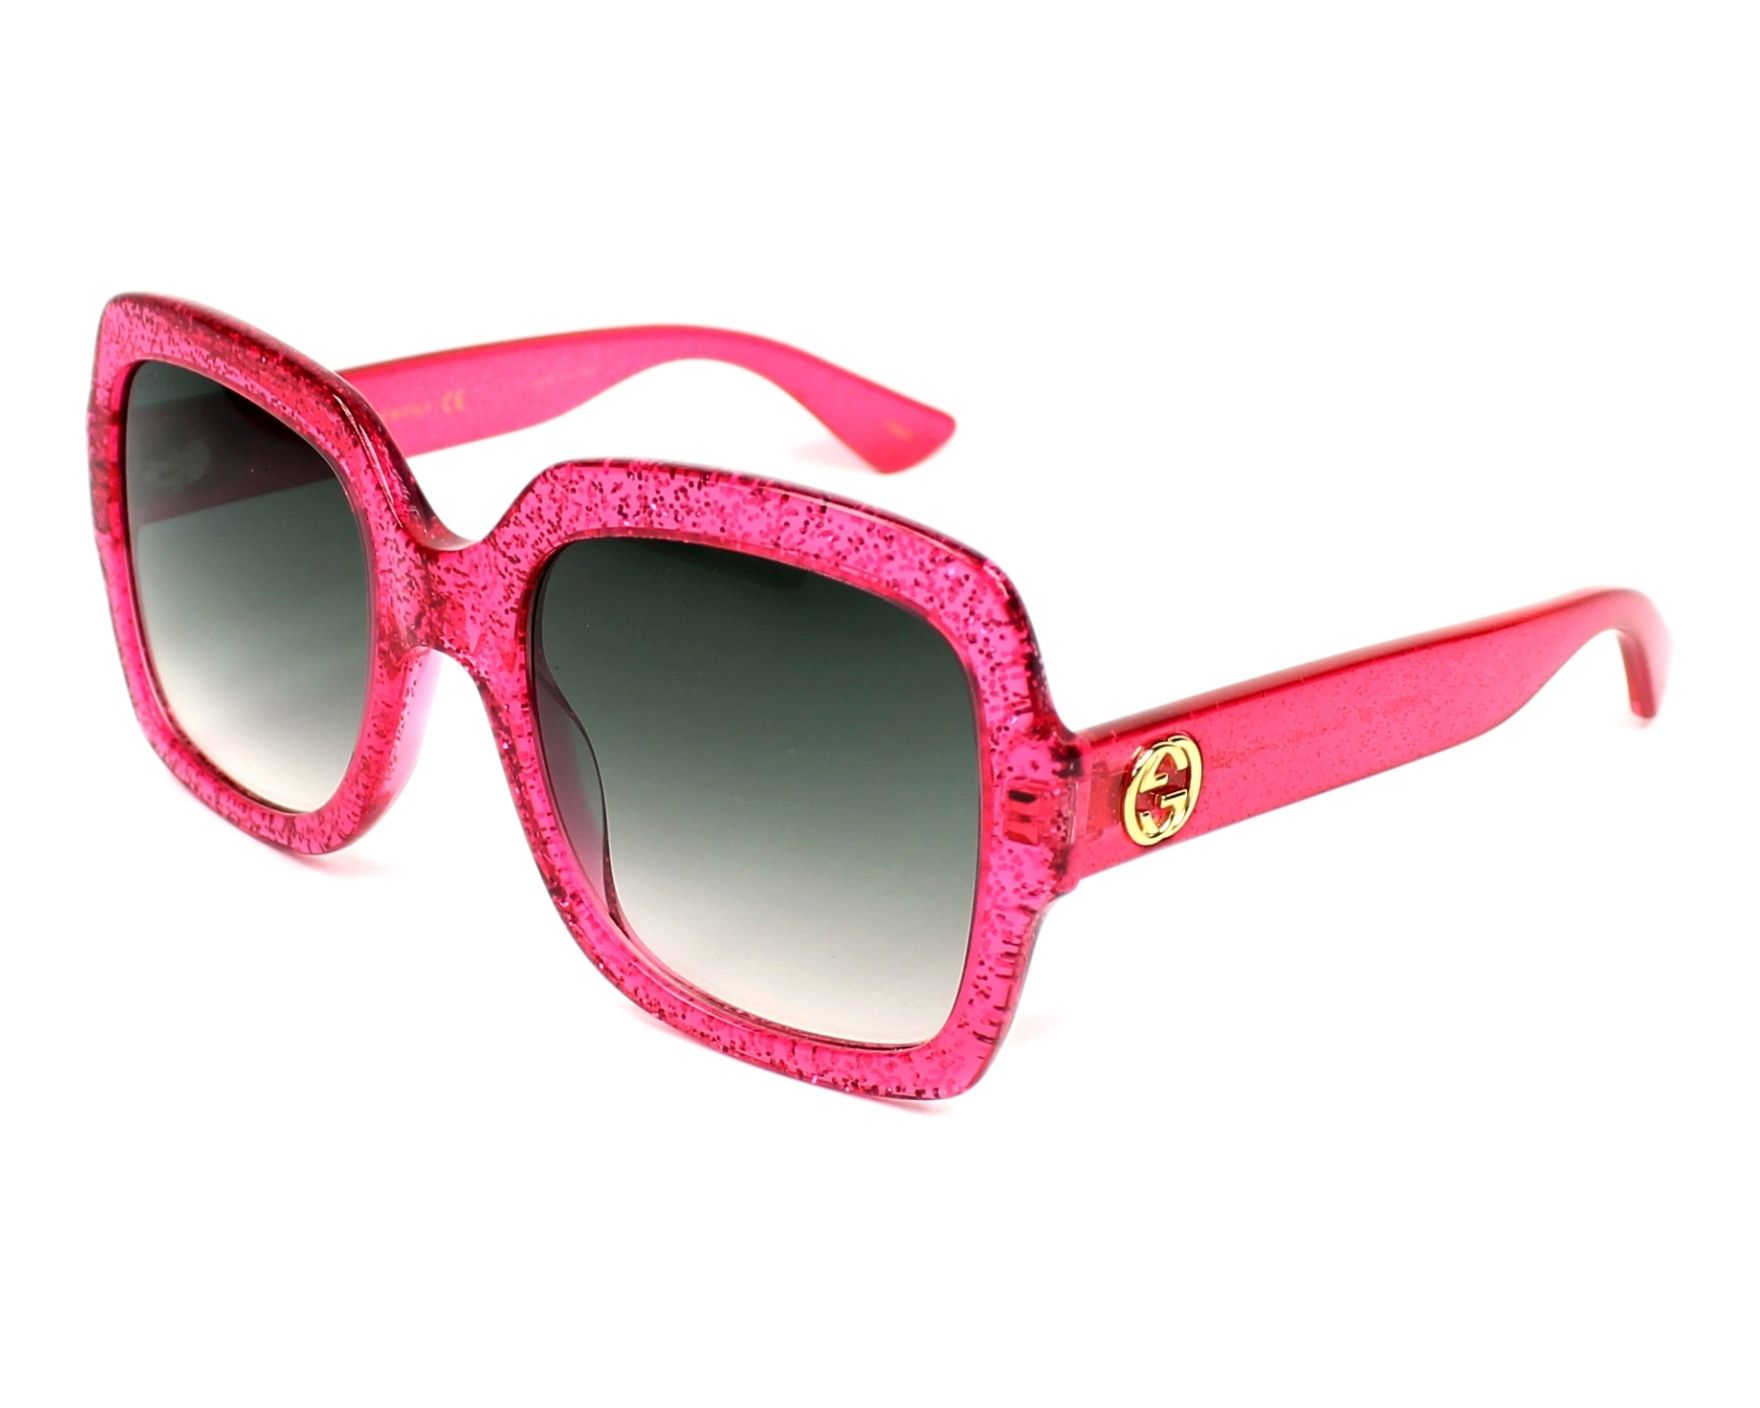 c2212981505 ... Havana Blue side view. 3 Other colours. Other colours. Gucci Sunglasses  GG-0036-S 007 54-22 Pink